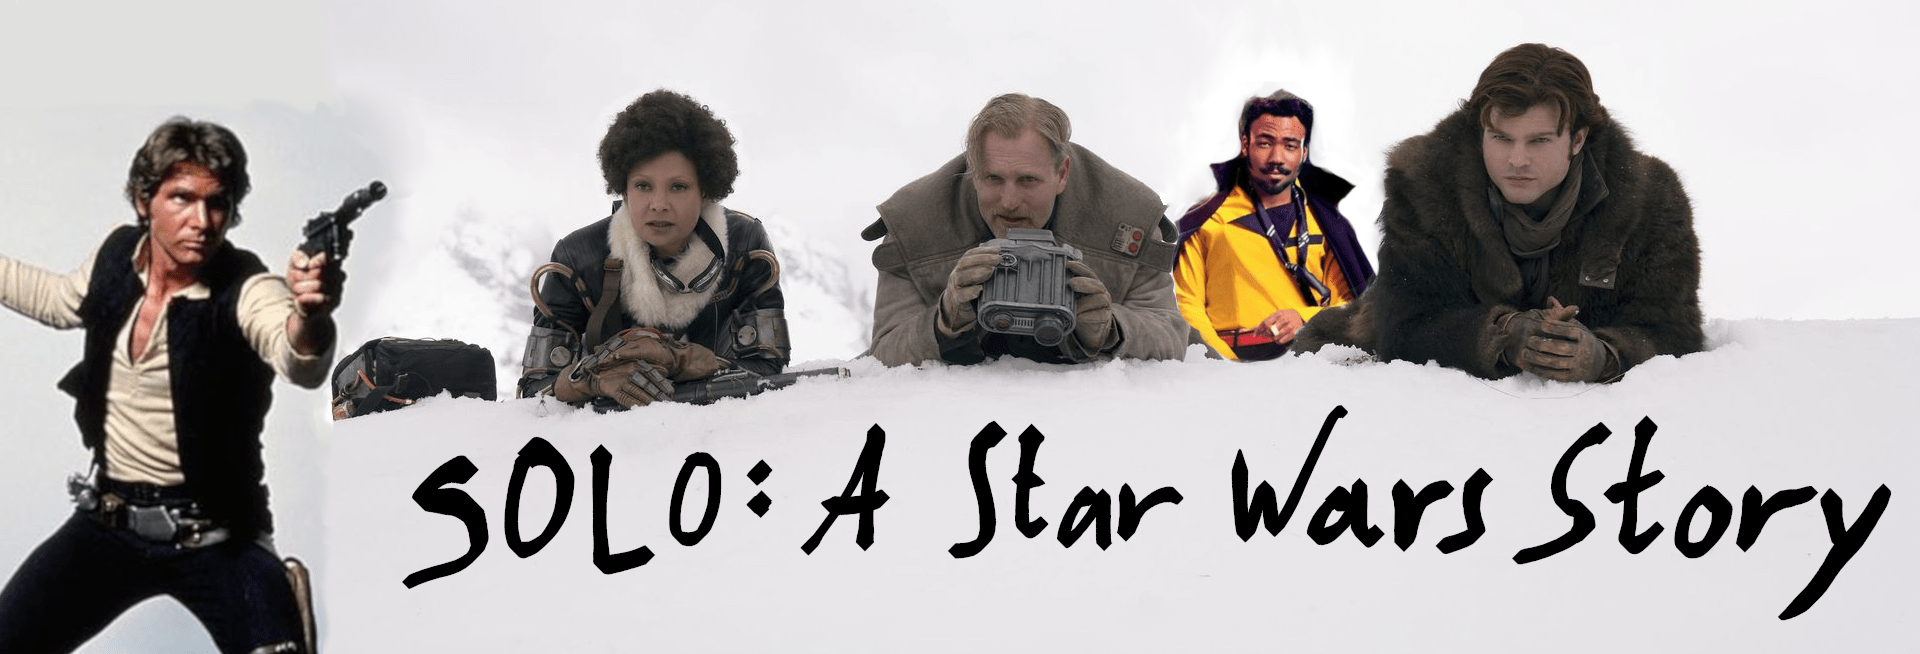 Solo: A Star Wars Story 9